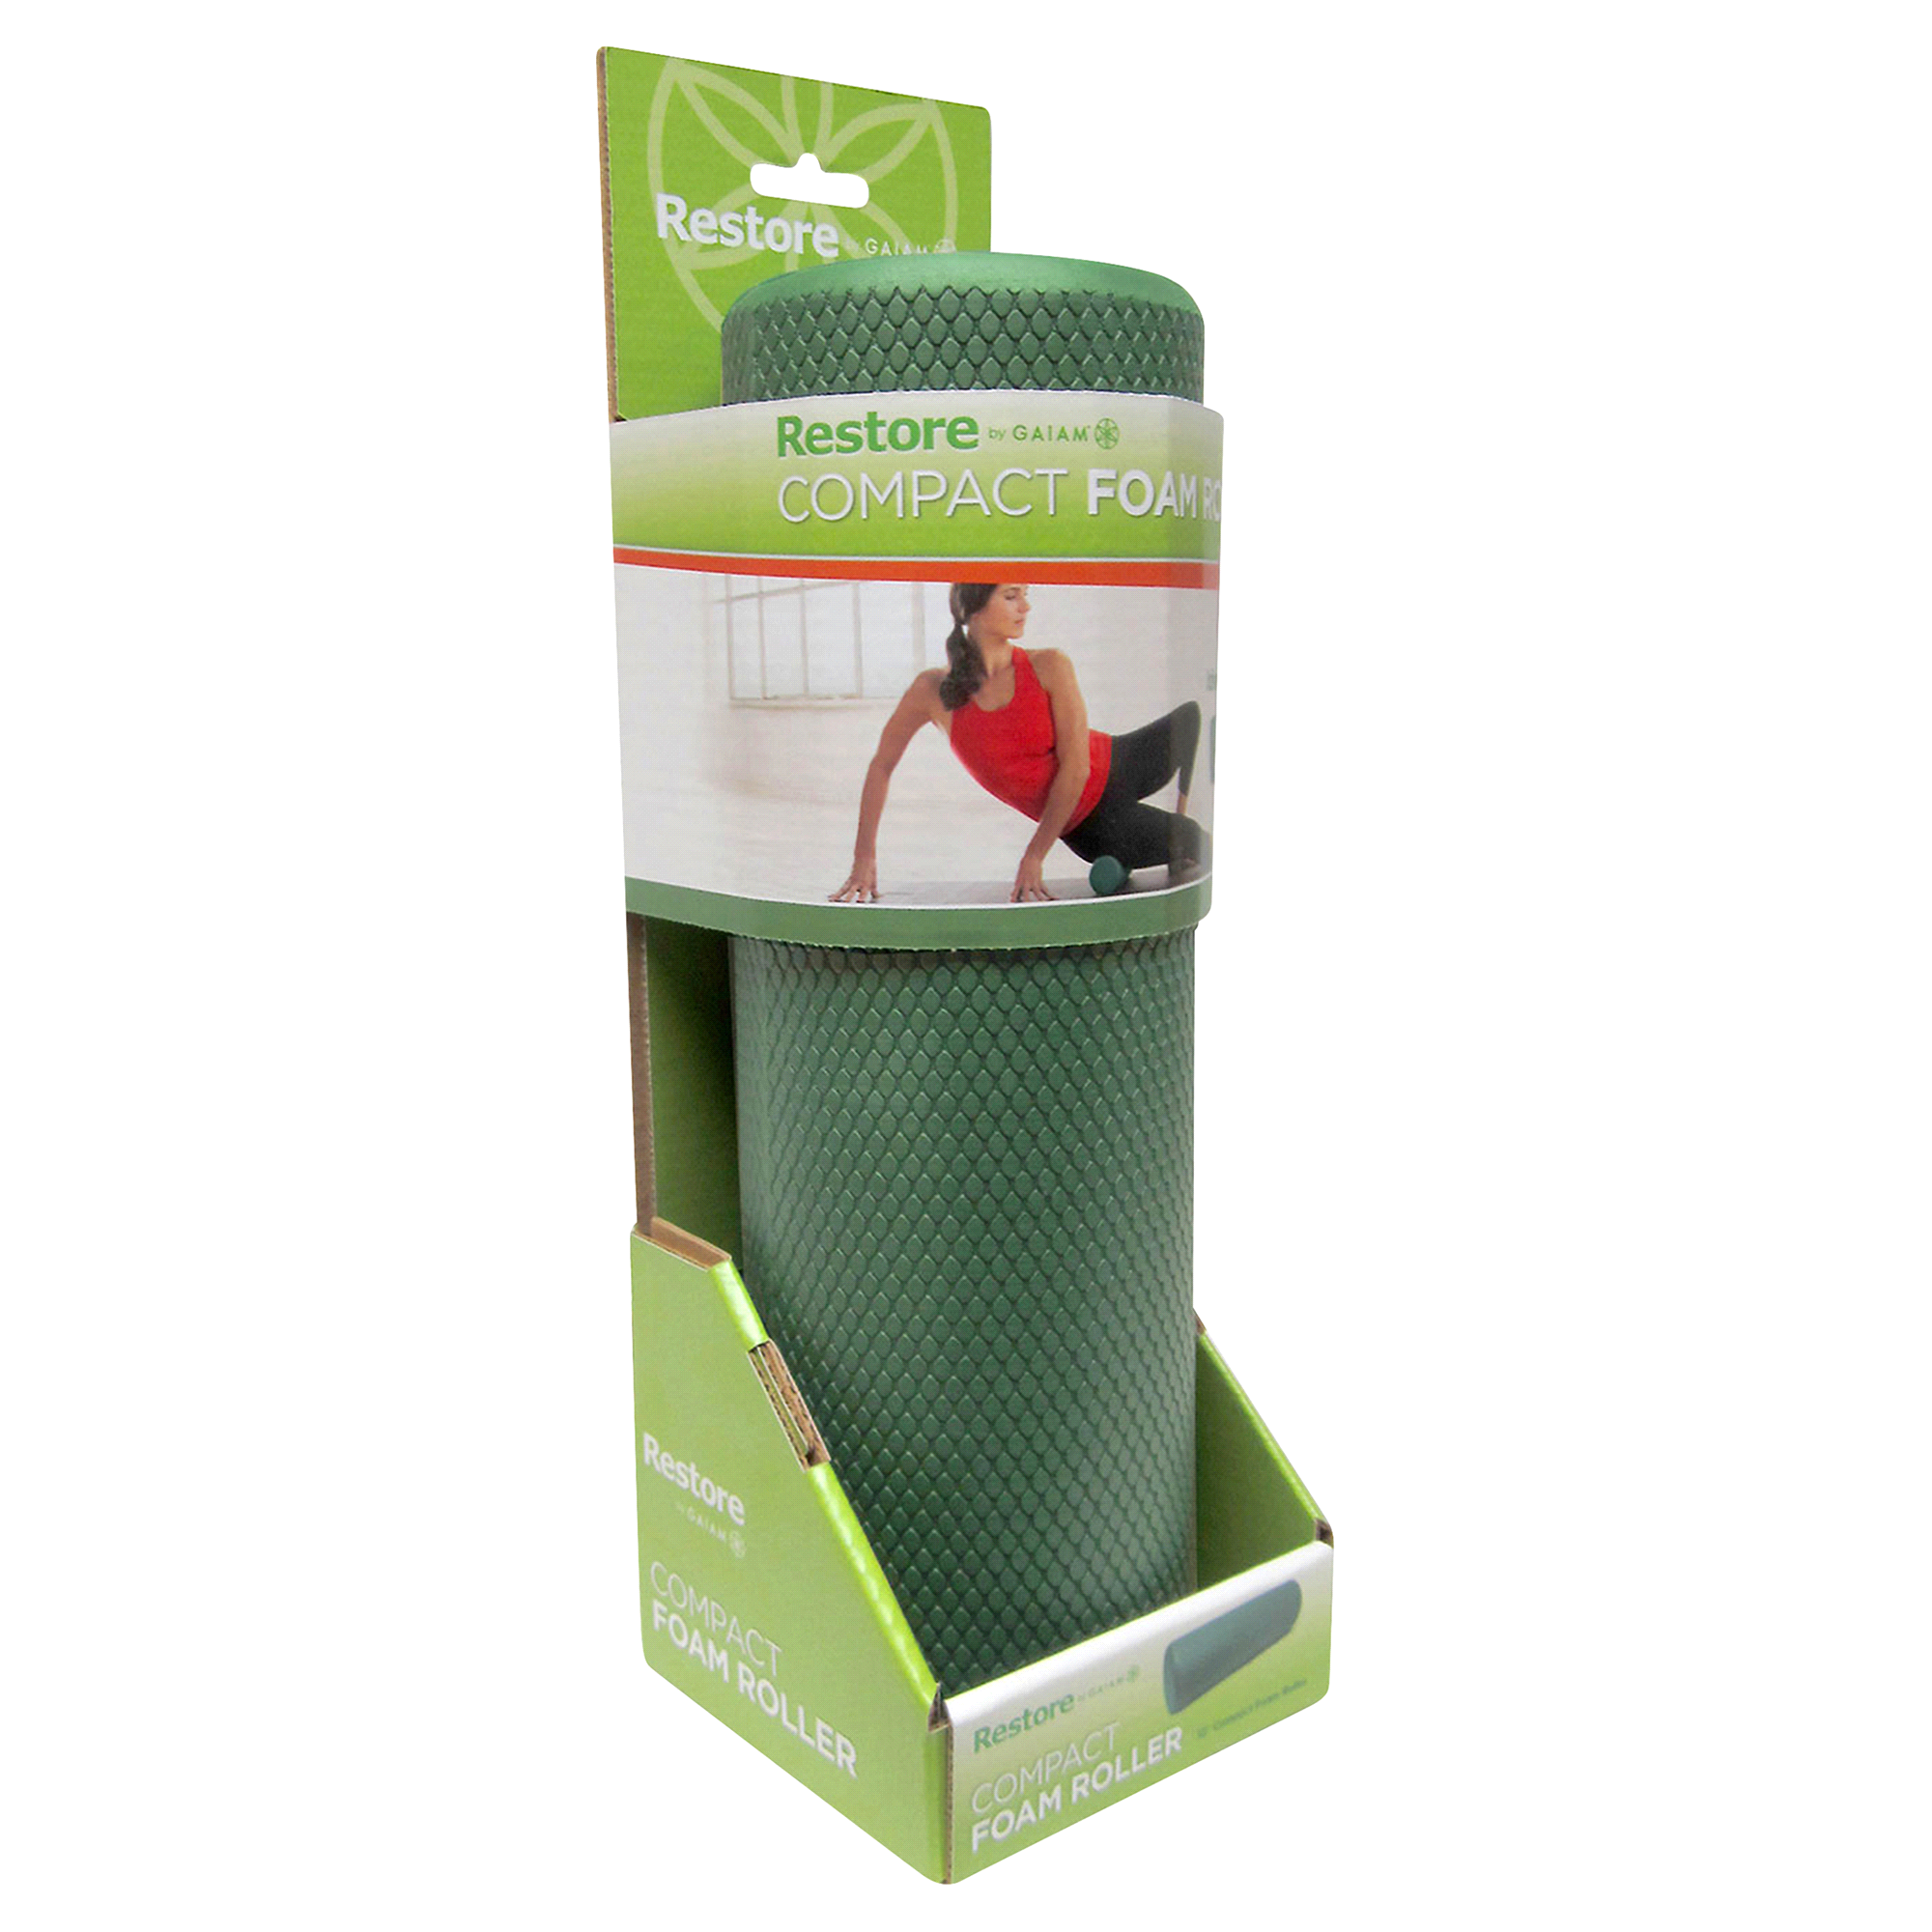 botanicals products kalola antibacterial spray mat yoga mister mats